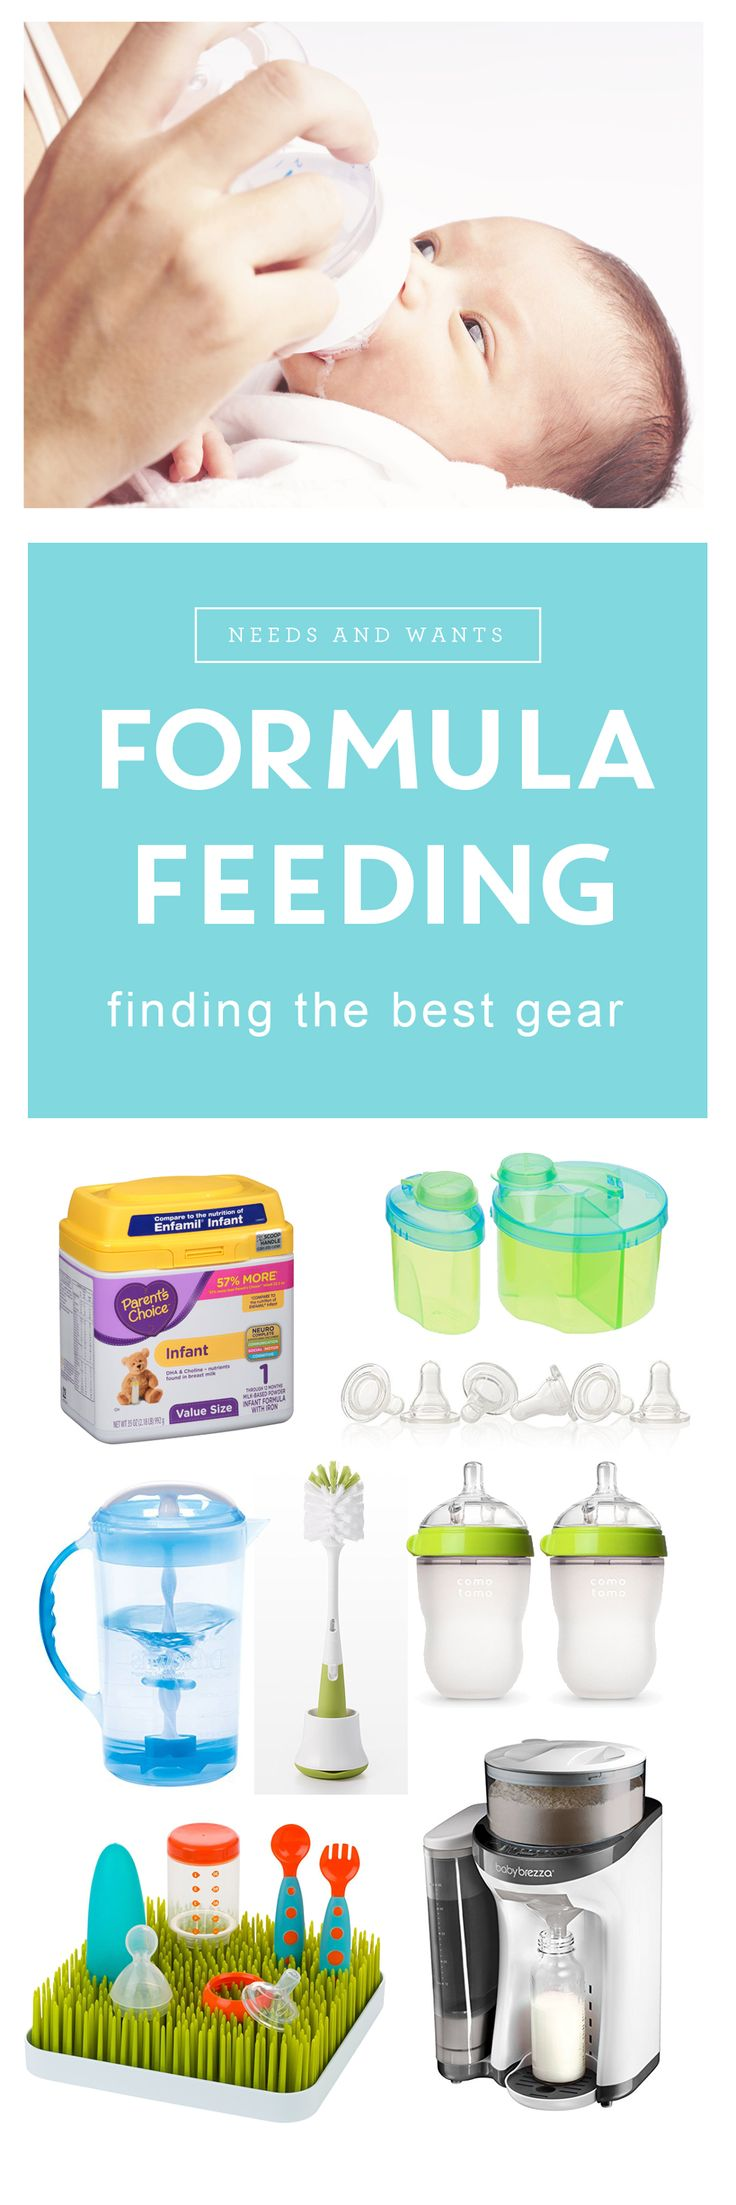 #sponsored by #ParentsChoice The best gear for formula feeding a newborn. Handy tips, schedules, and charts to help guide you through those first days with your baby. via @pregnantchicken